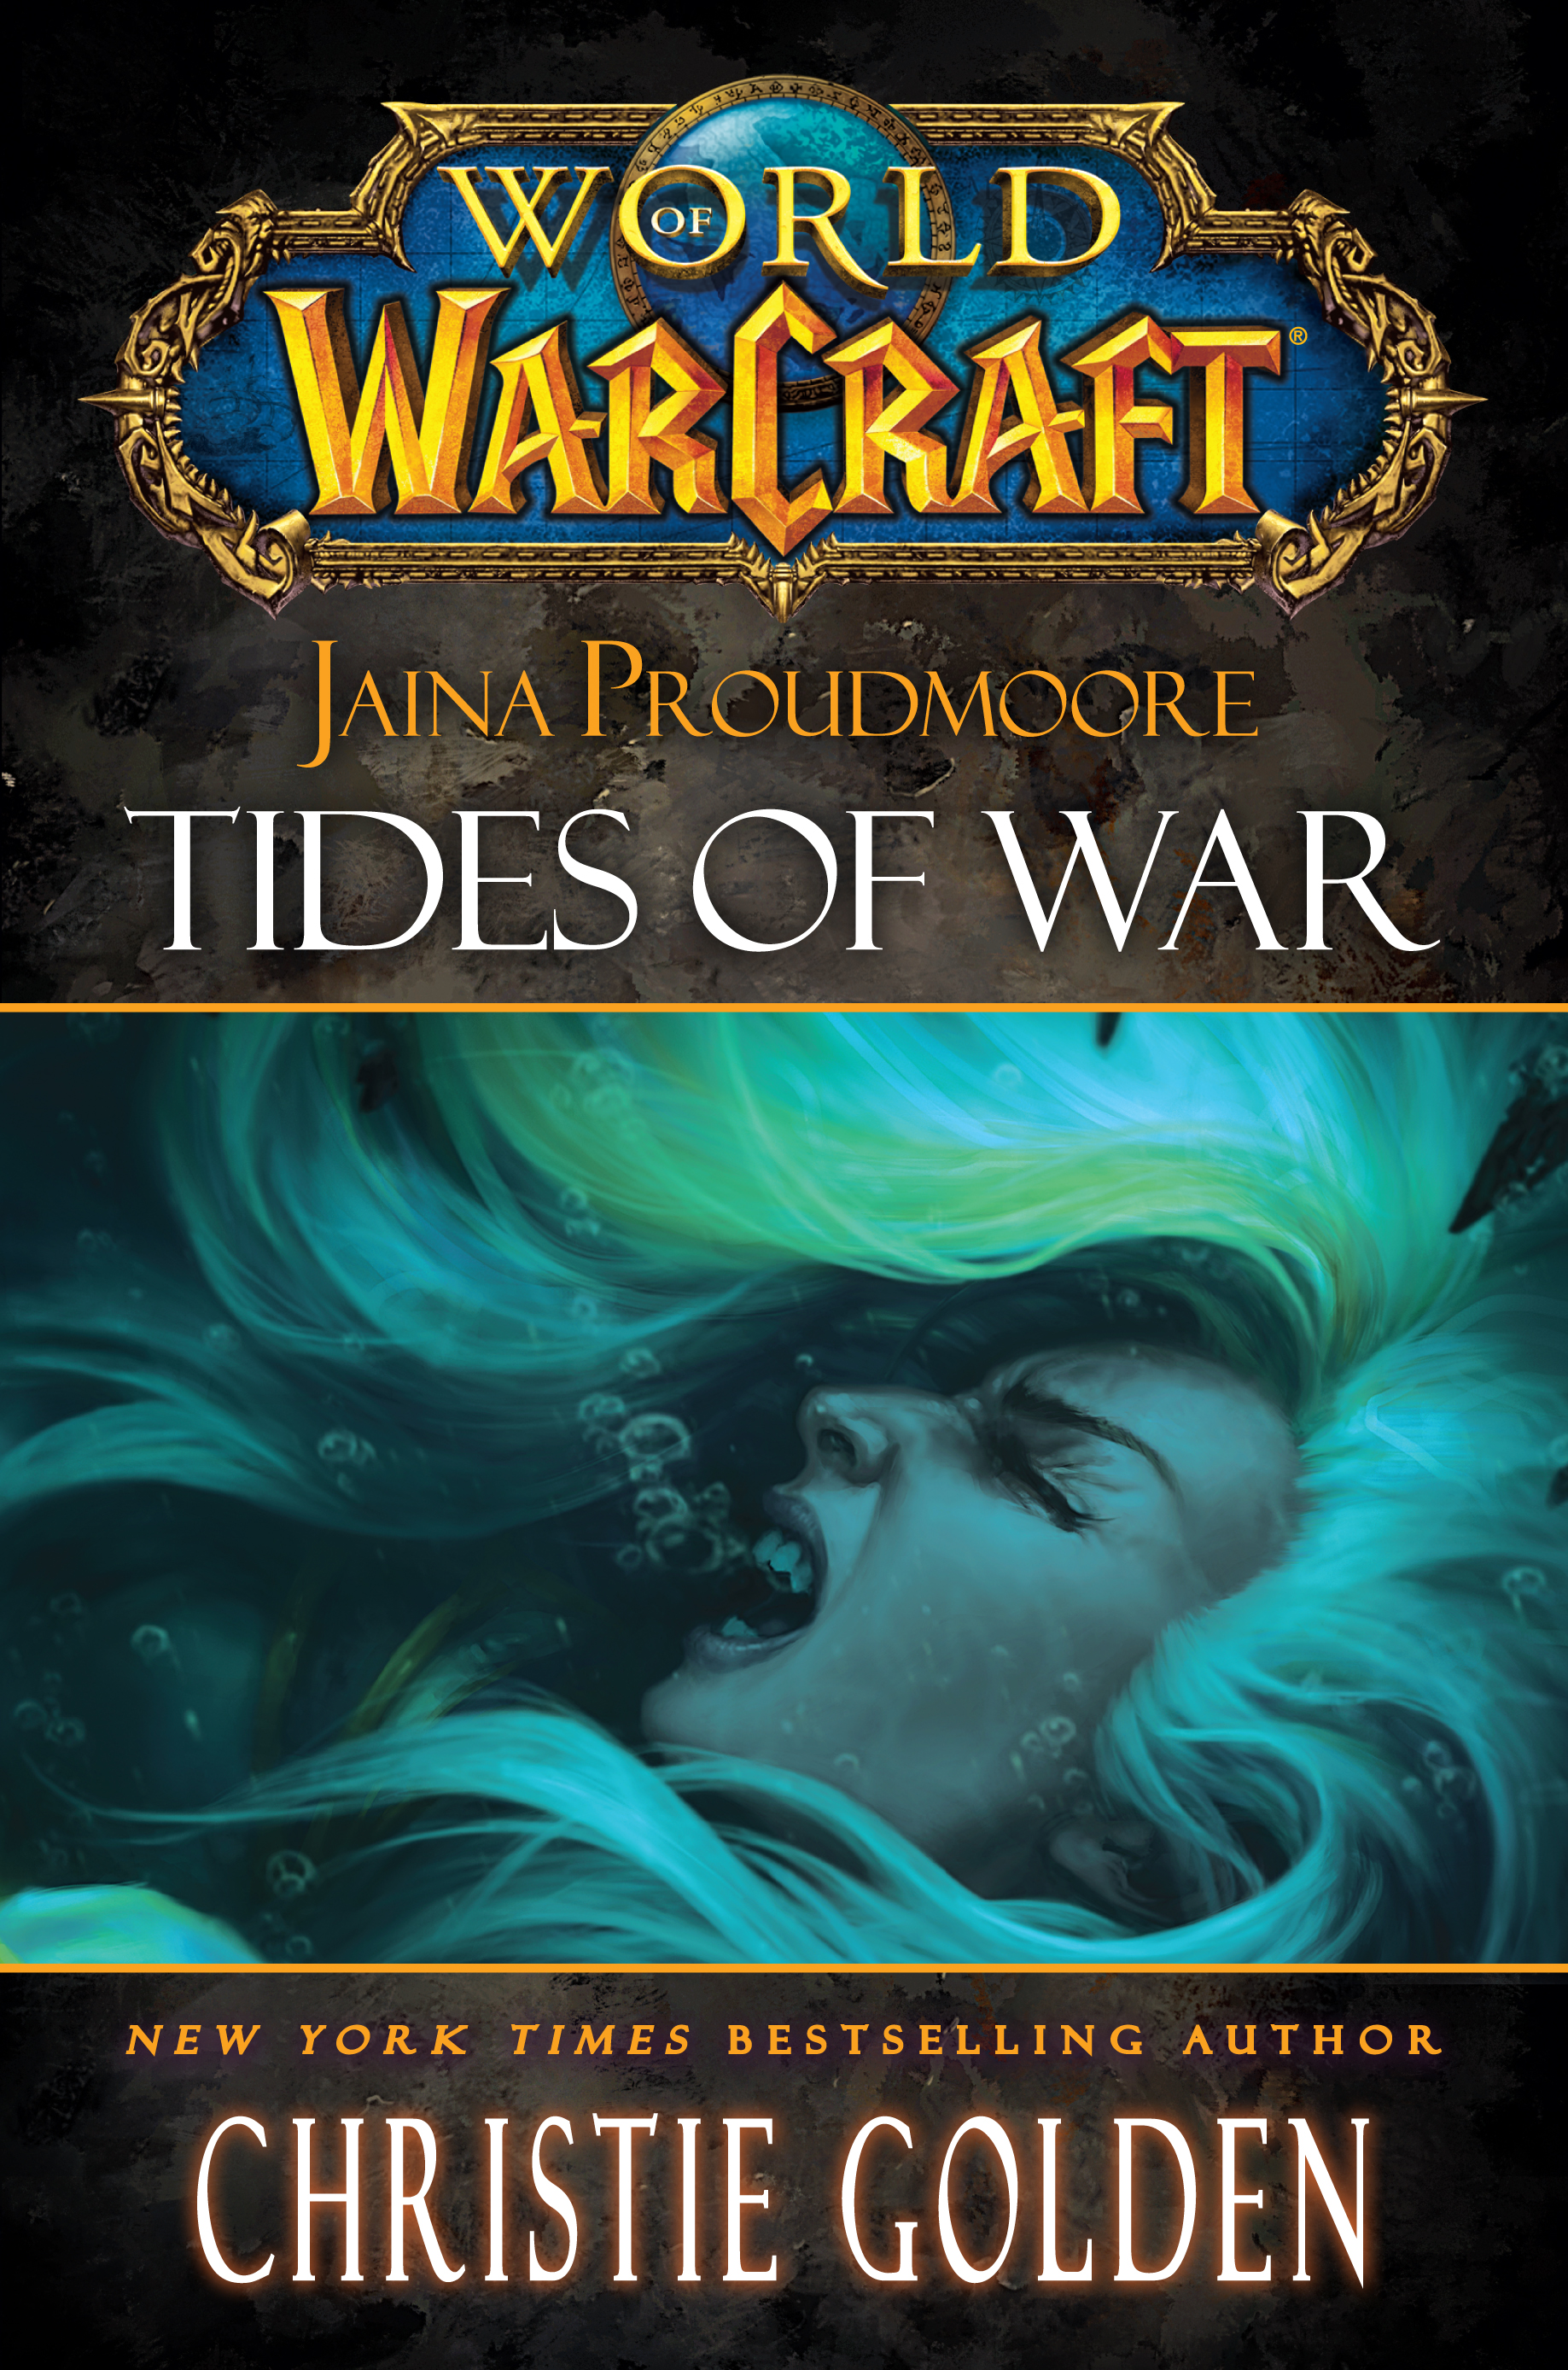 World of warcraft jana proud moore sex  sexy clip